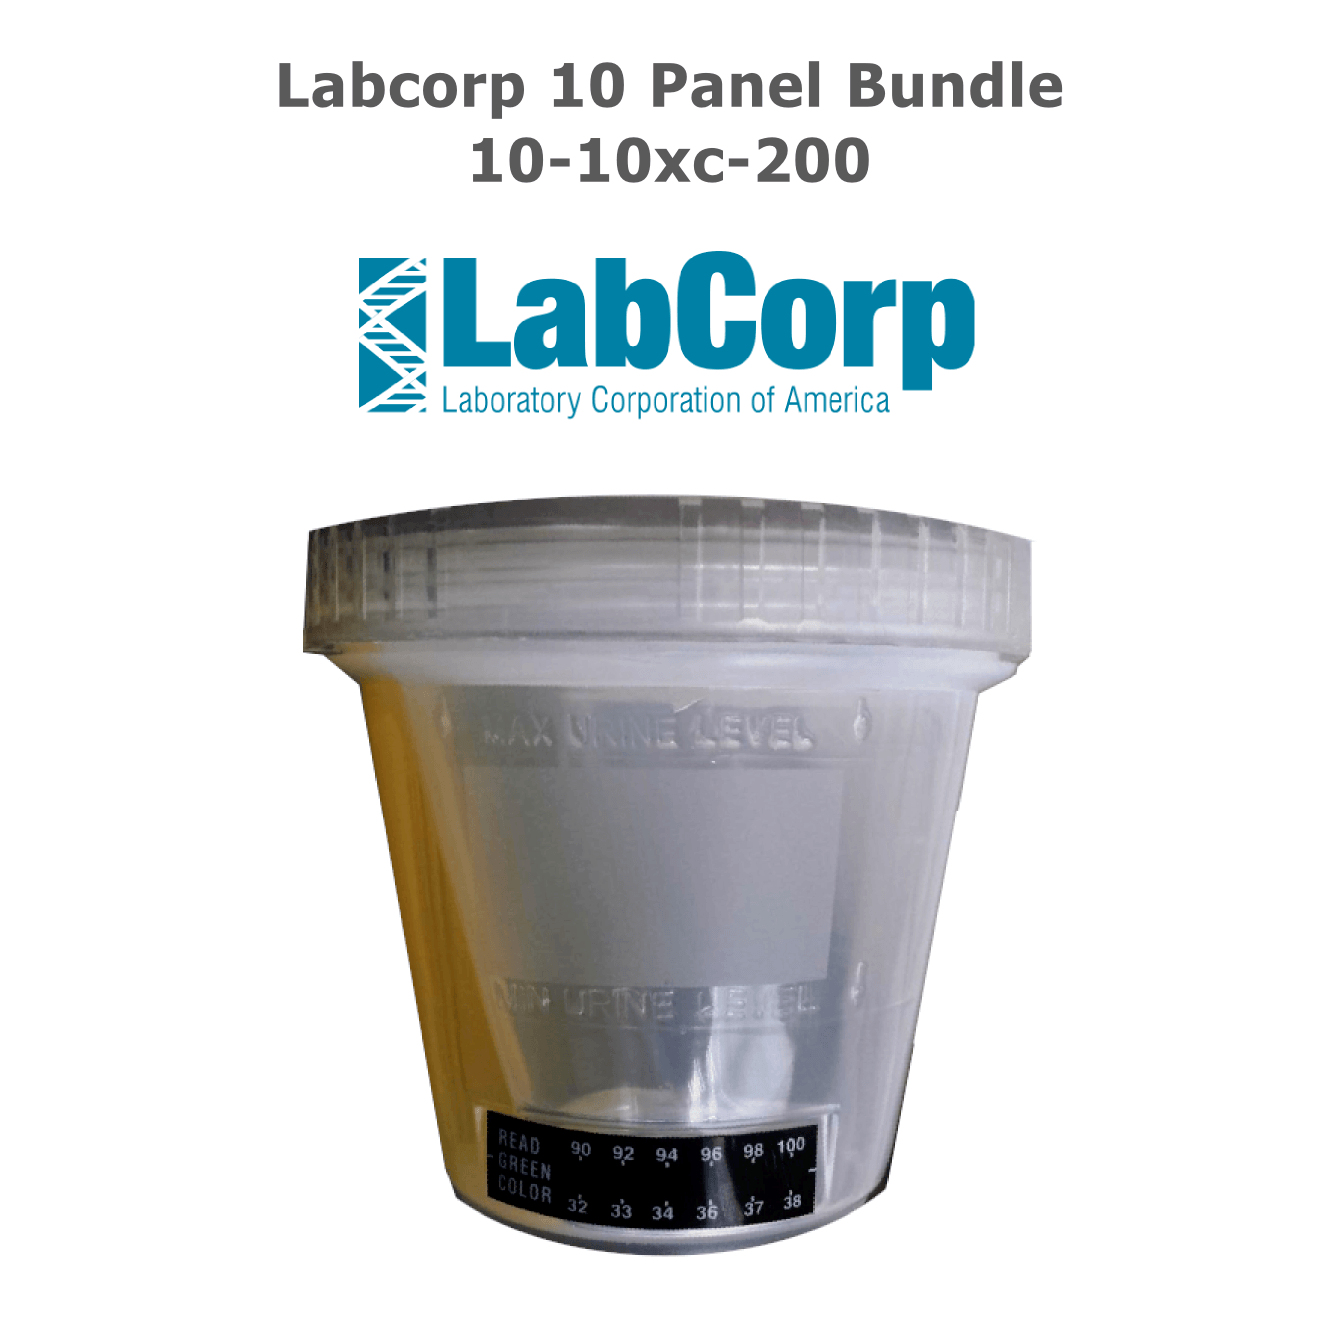 Labcorp 10 Panel Bundle 10 10xc 200 Drug Free Workplace Store Drug Free Workplace Programs And Services